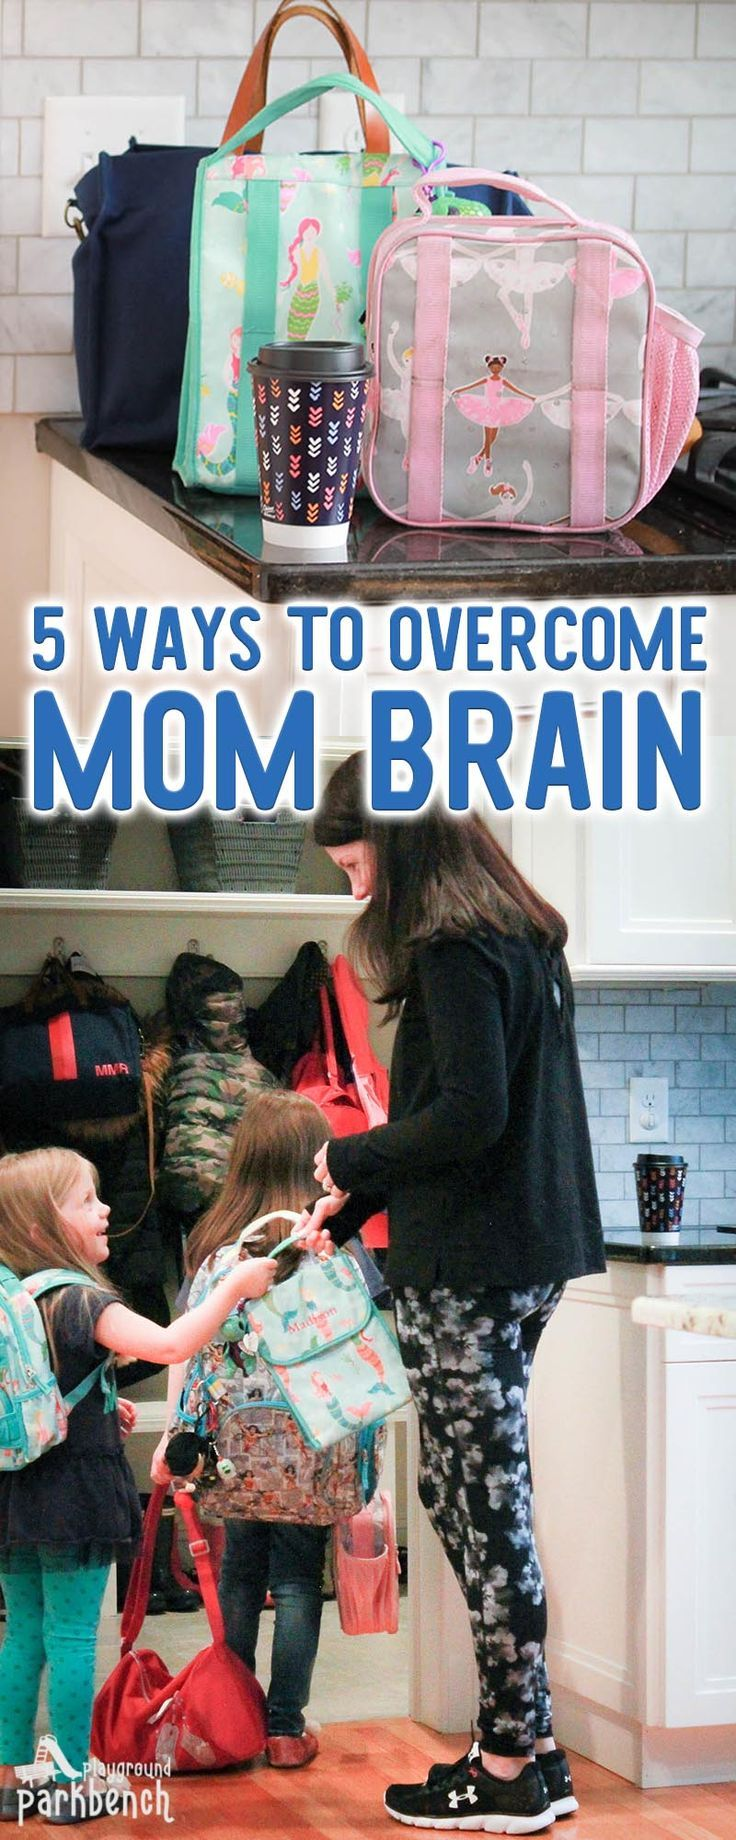 Has the mental load of motherhood left you in a daze? You can overcome it with a few simple lifestyle changes to help you organize and consolidate the chaos. | Mom Life | Organize Me #momlife #mombrain #parenting via @playgroundpb